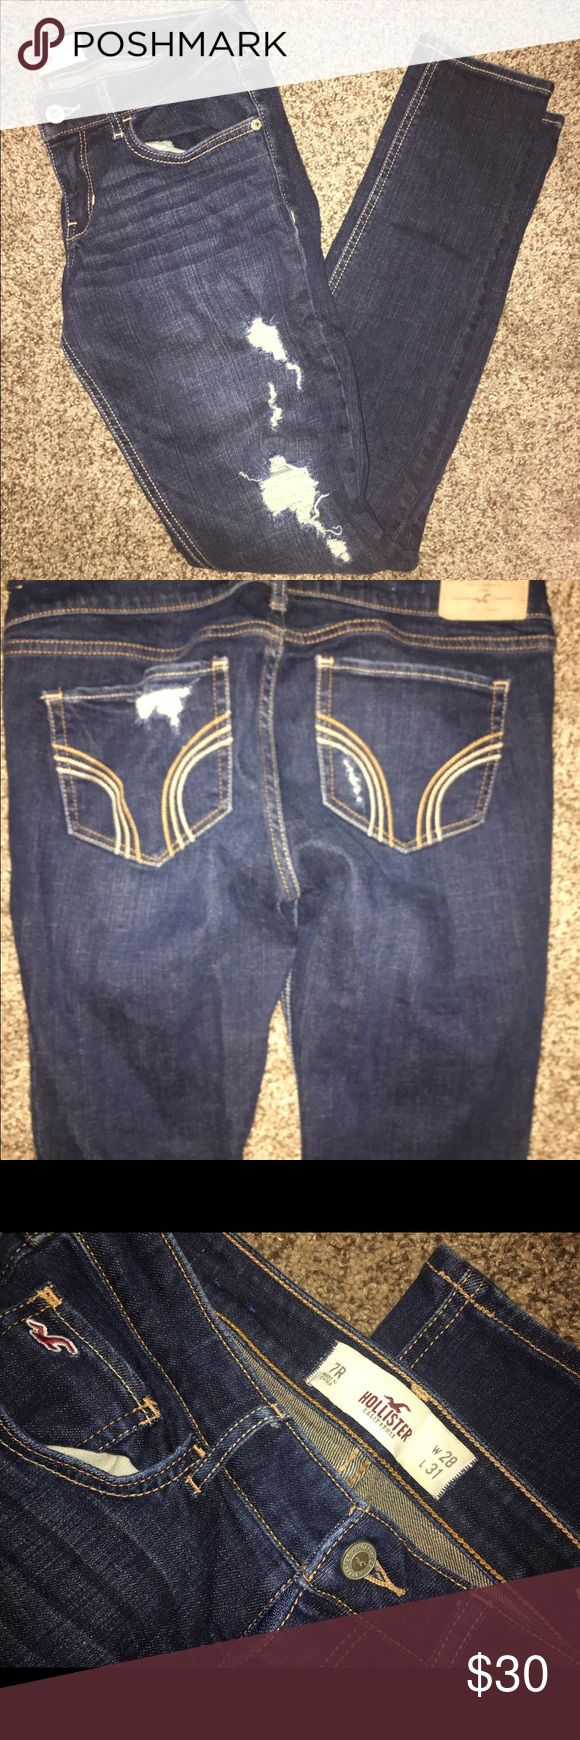 🌟Hollister Distressed Jeans SZ 7 Dark wash, stretchy jeans, SZ 7/28. Pairs perfectly with heels or winter boots! Look Brand New! Hollister Jeans Skinny